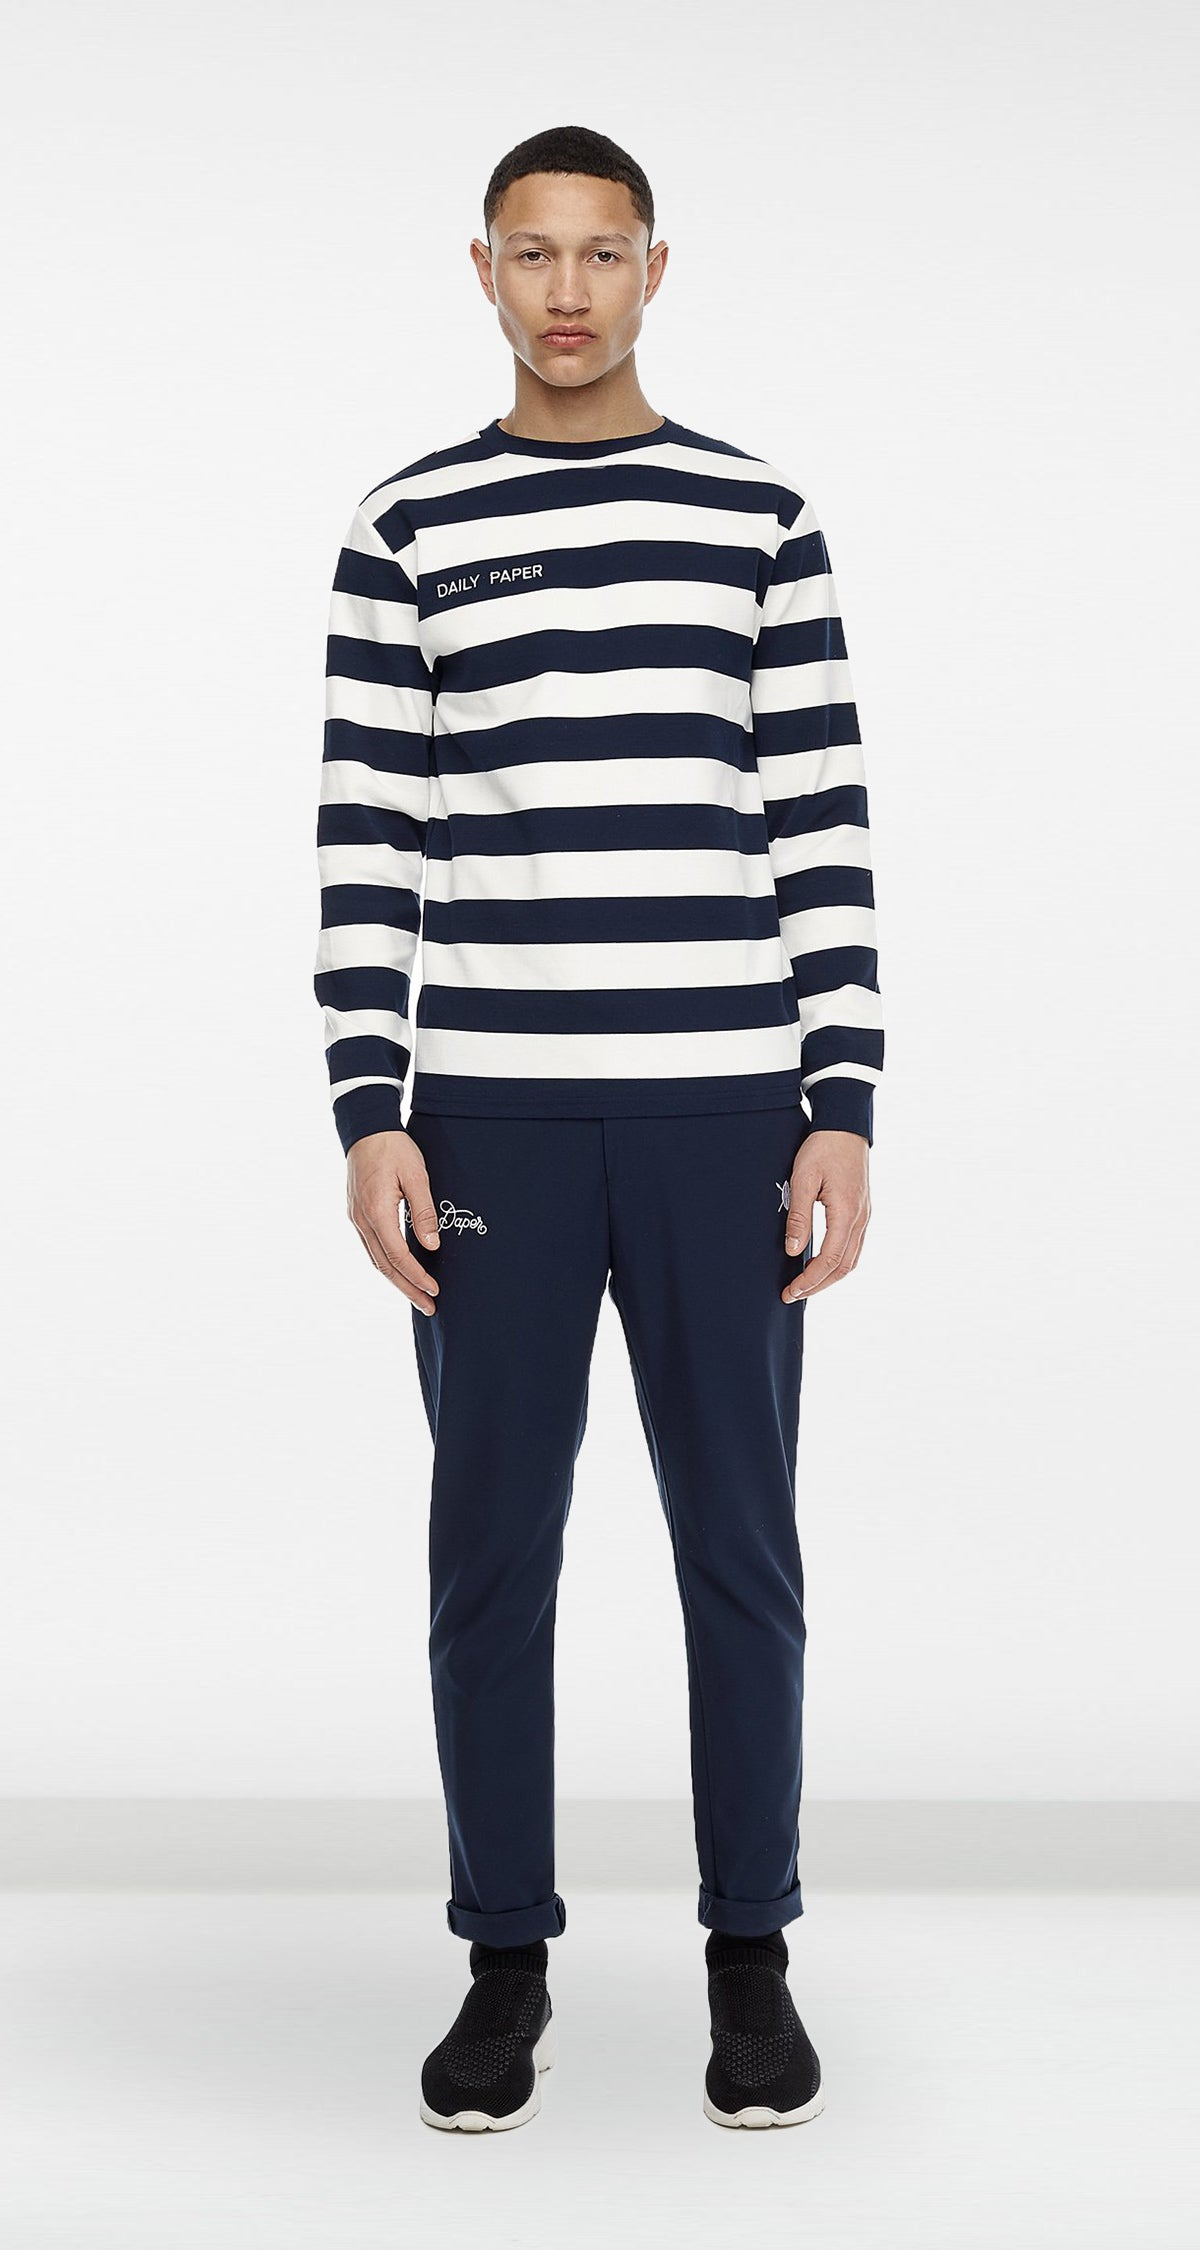 Daily Paper - Navy Striped Longsleeve Men